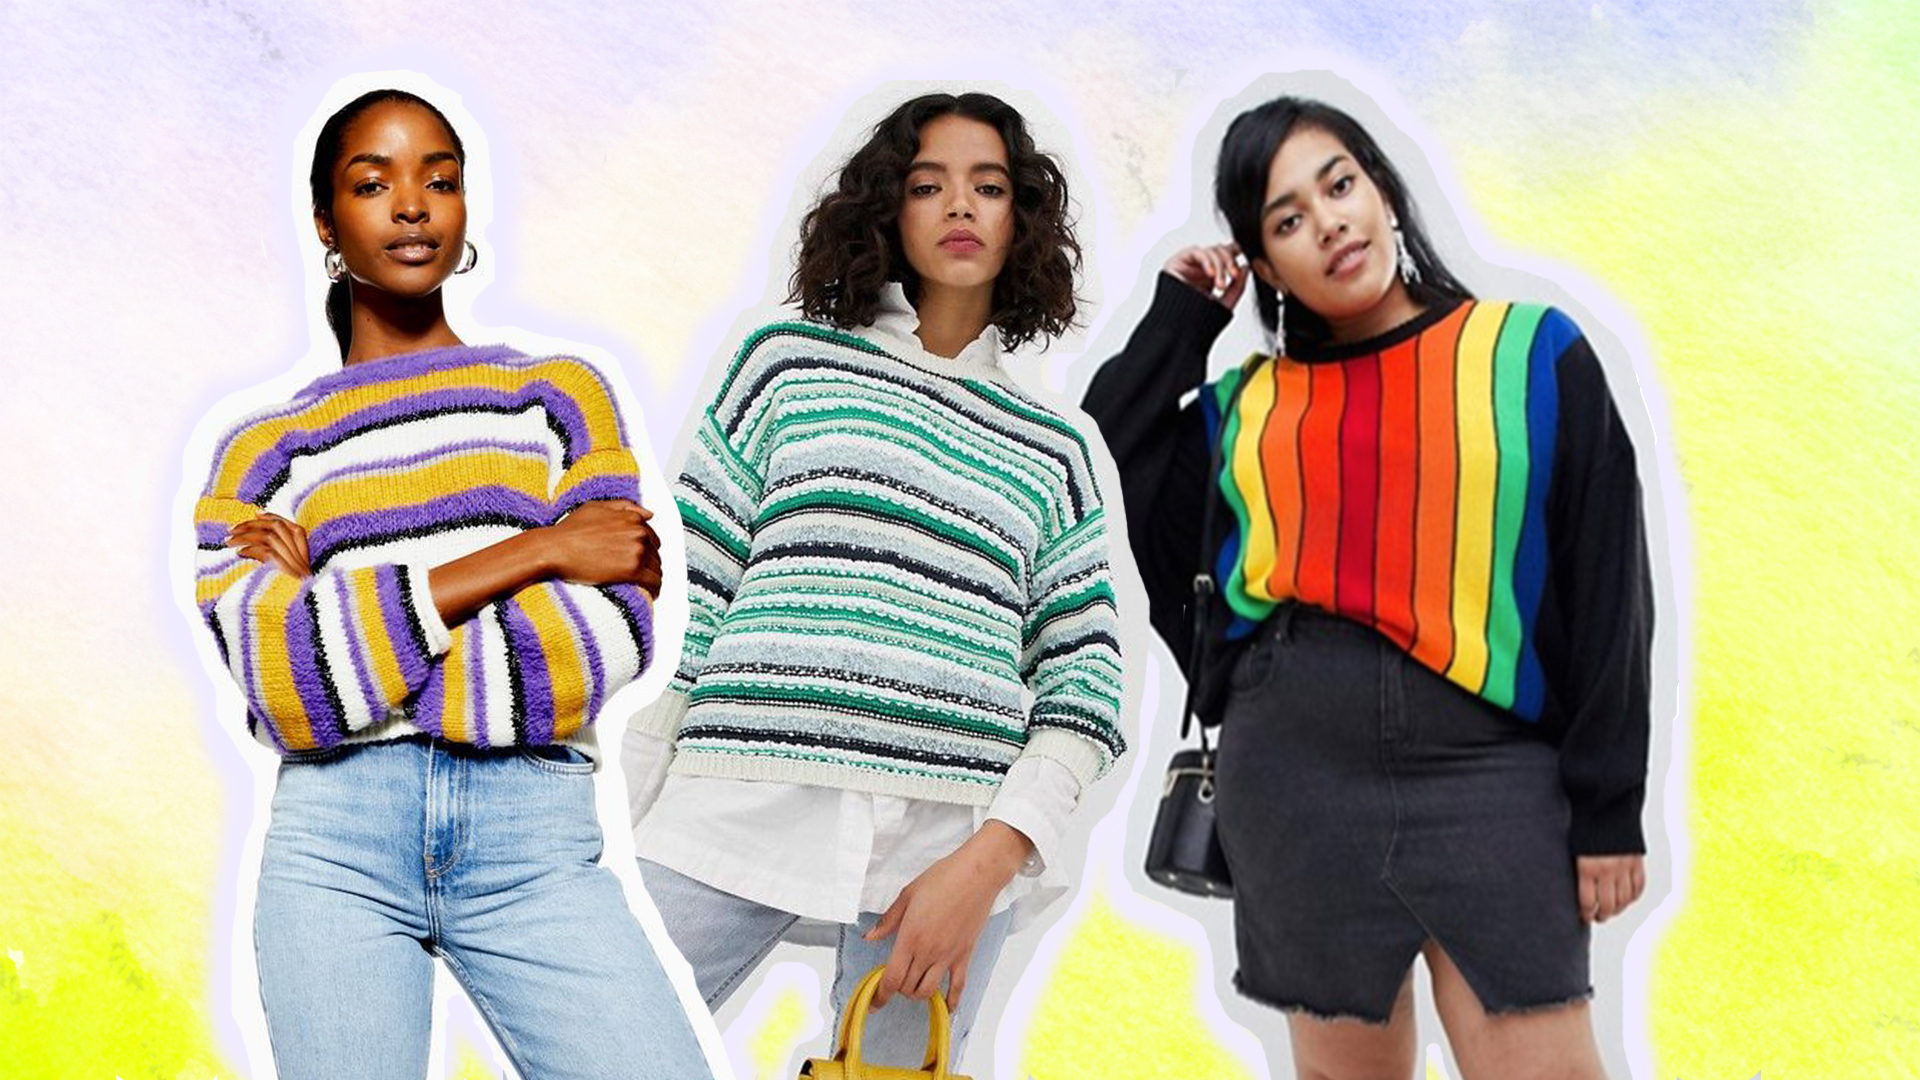 The Best Time to Wear a Striped Sweater? All the Time